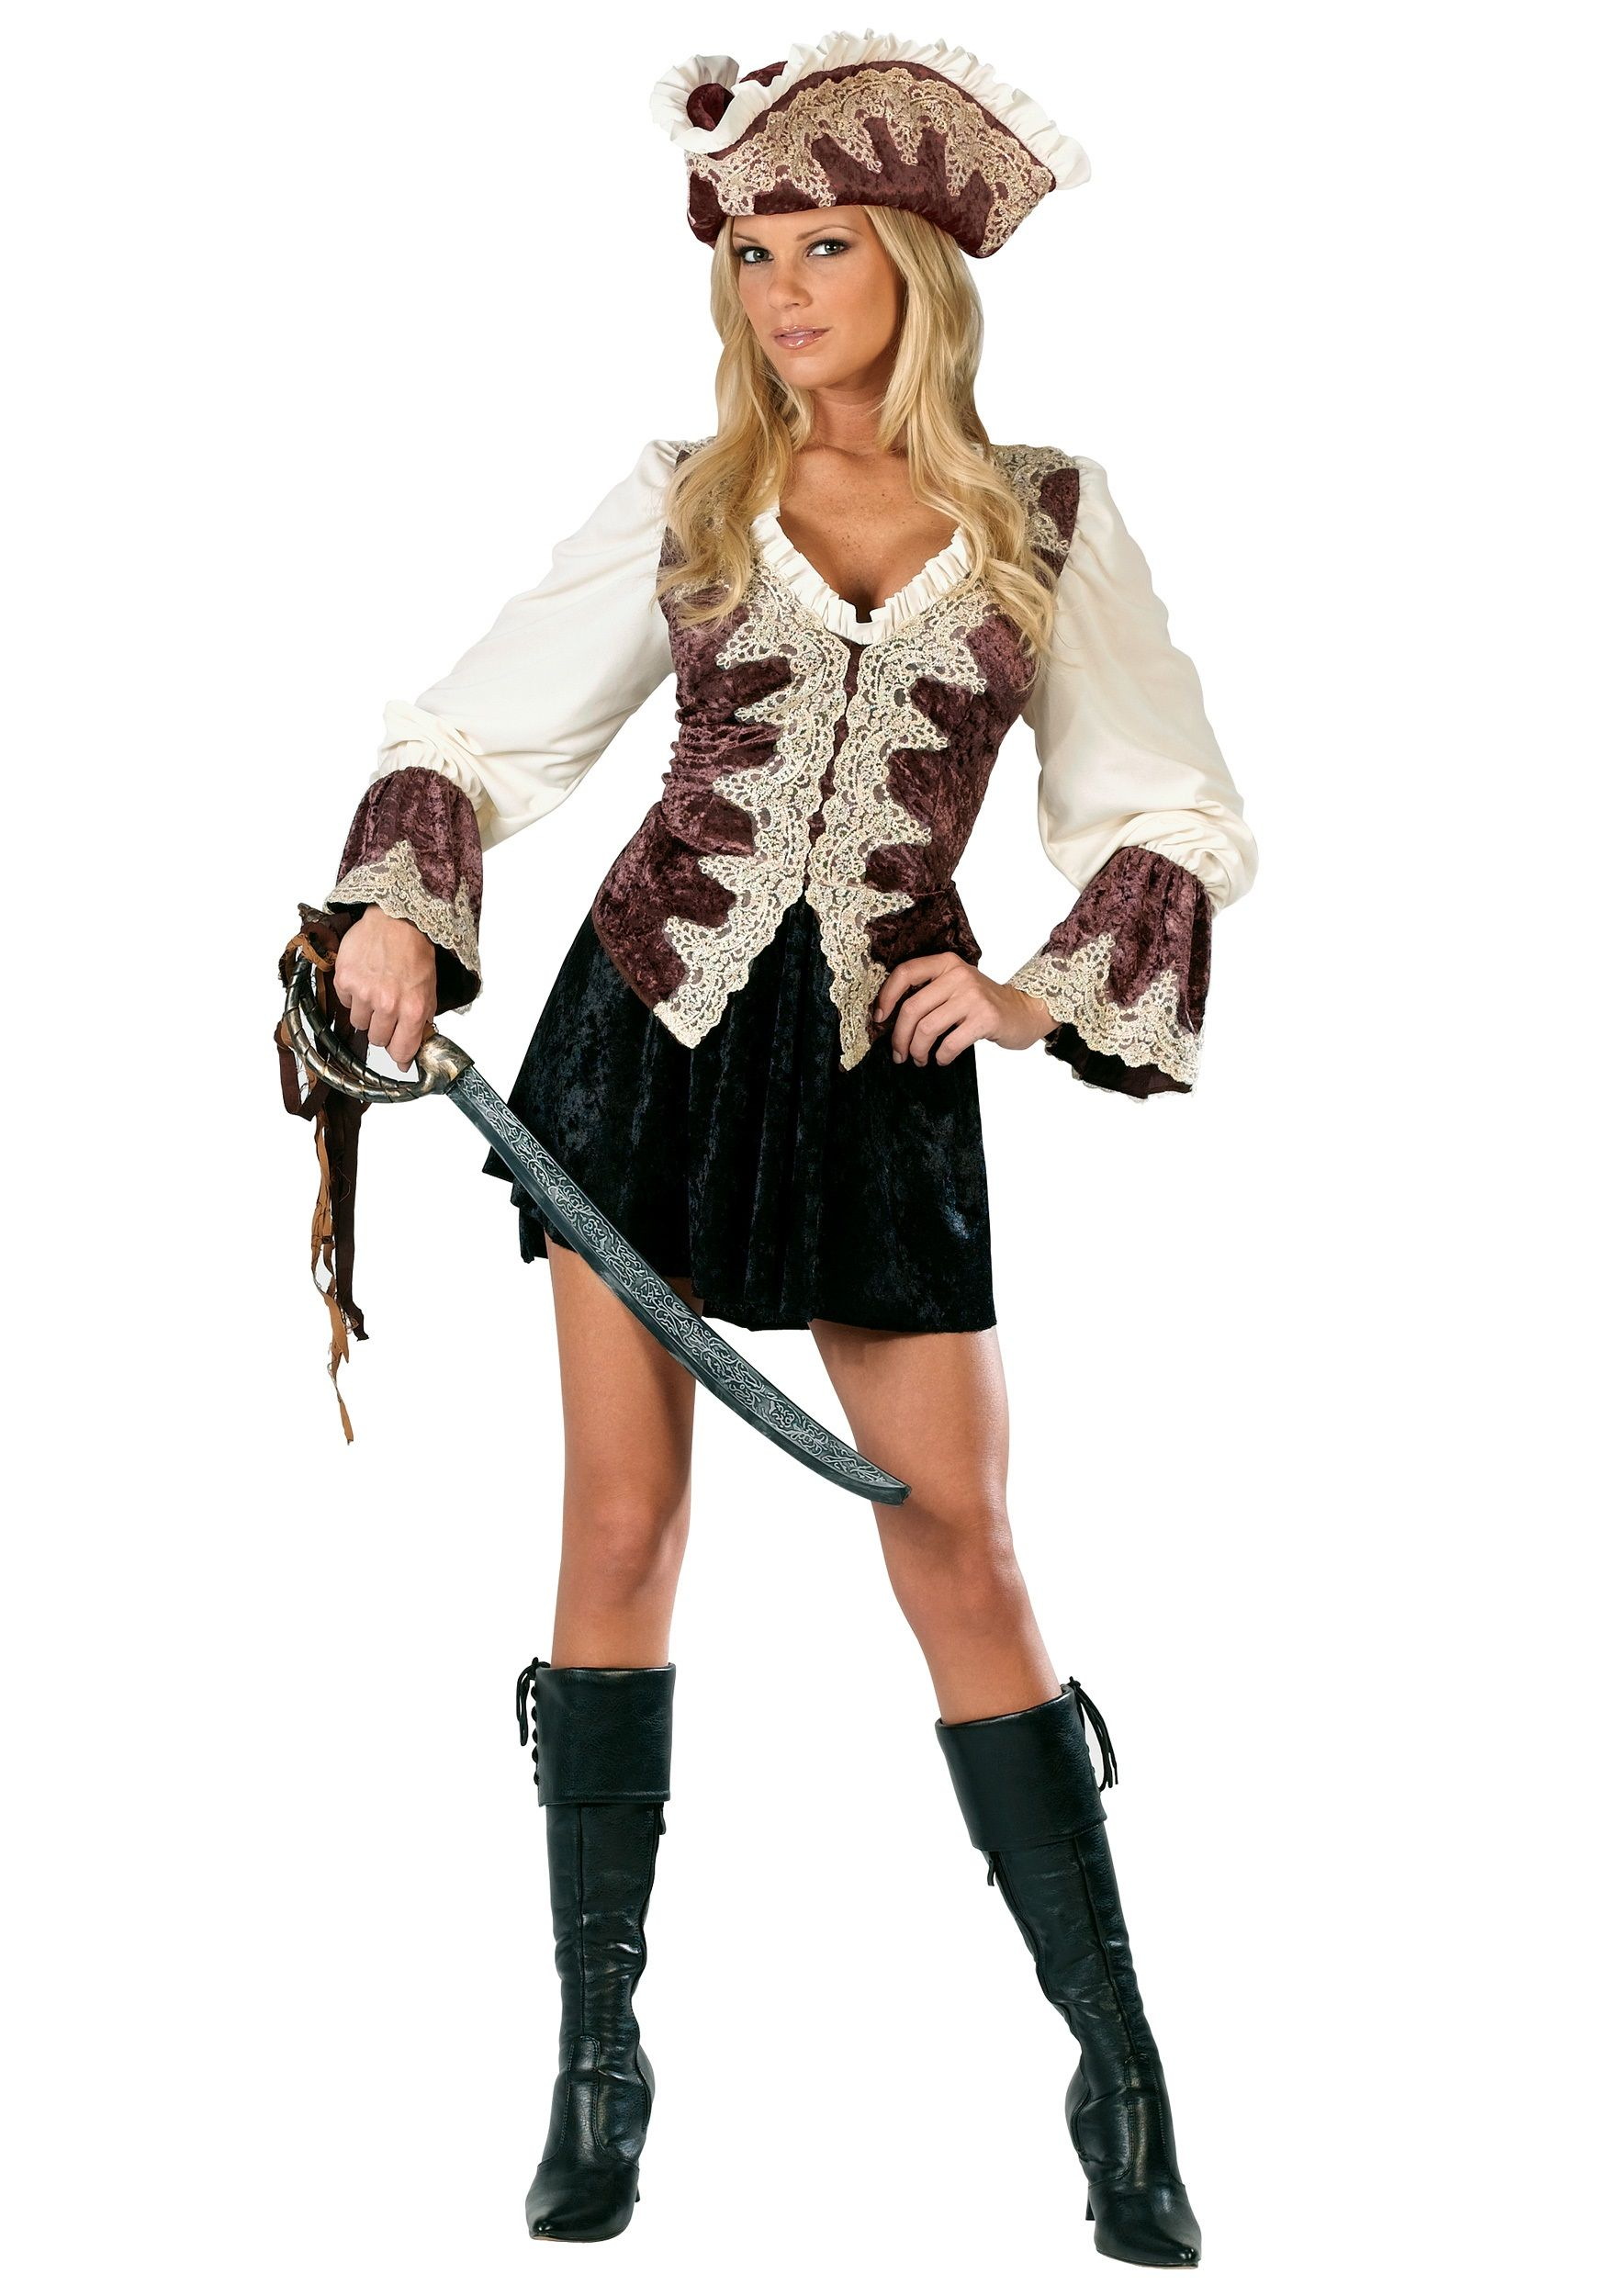 famous saloon girls home halloween costume ideas historical costumes pirate costumes adult - Halloween Pirate Costume Ideas